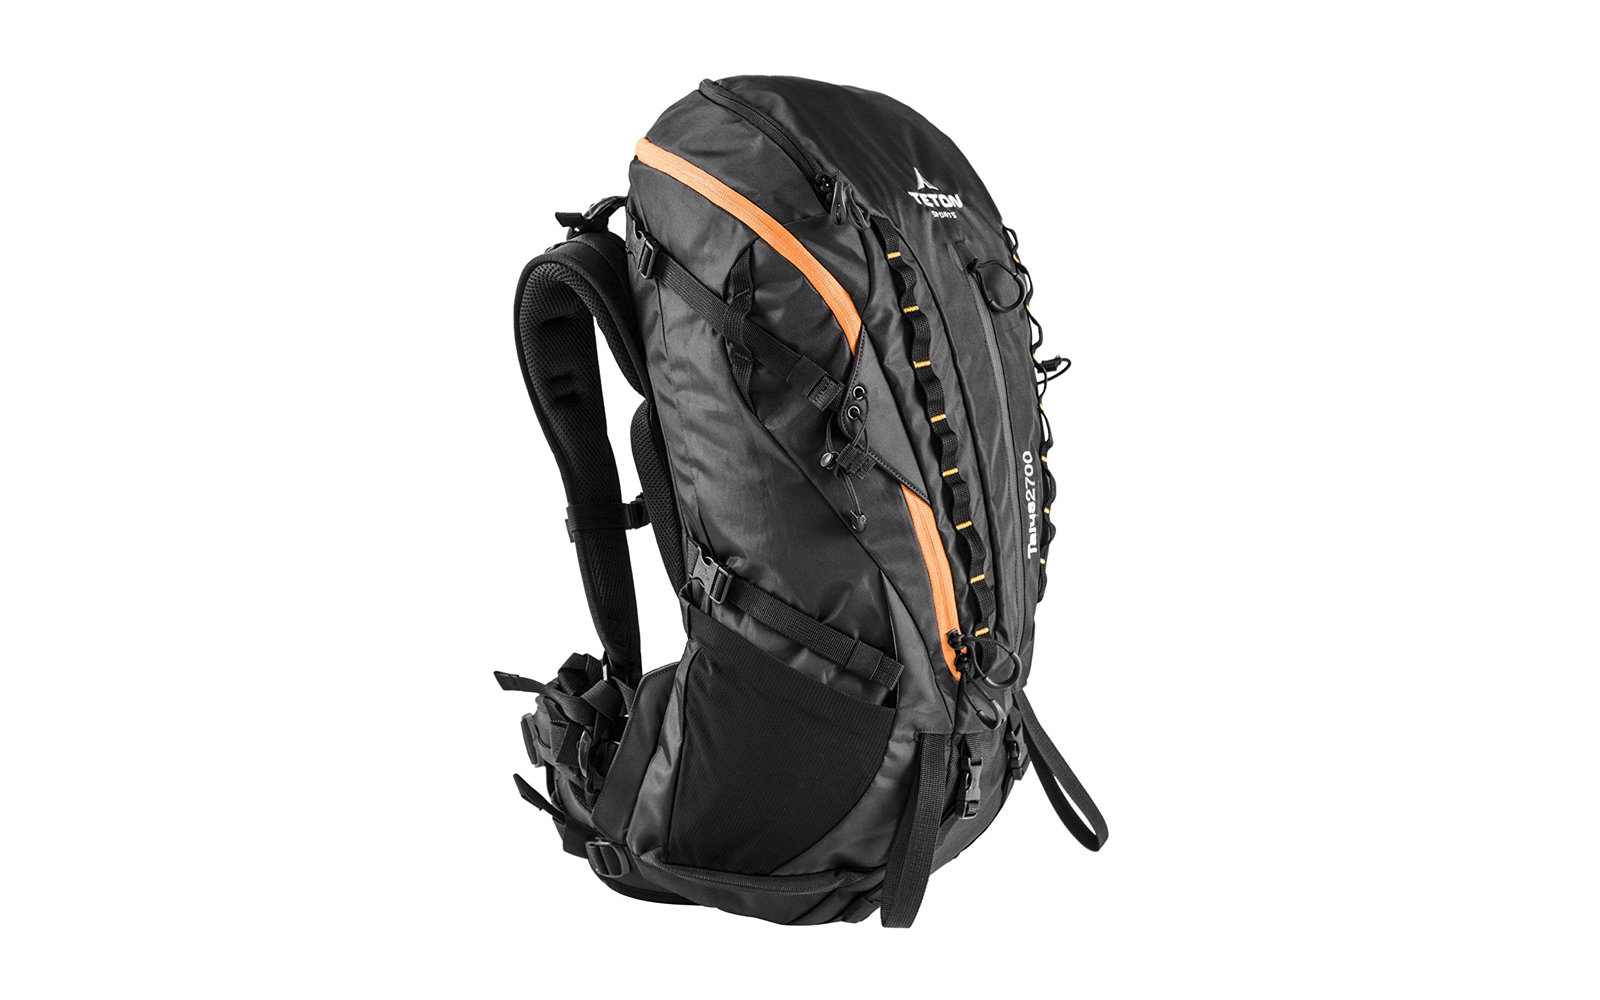 Teton Sports Backpack